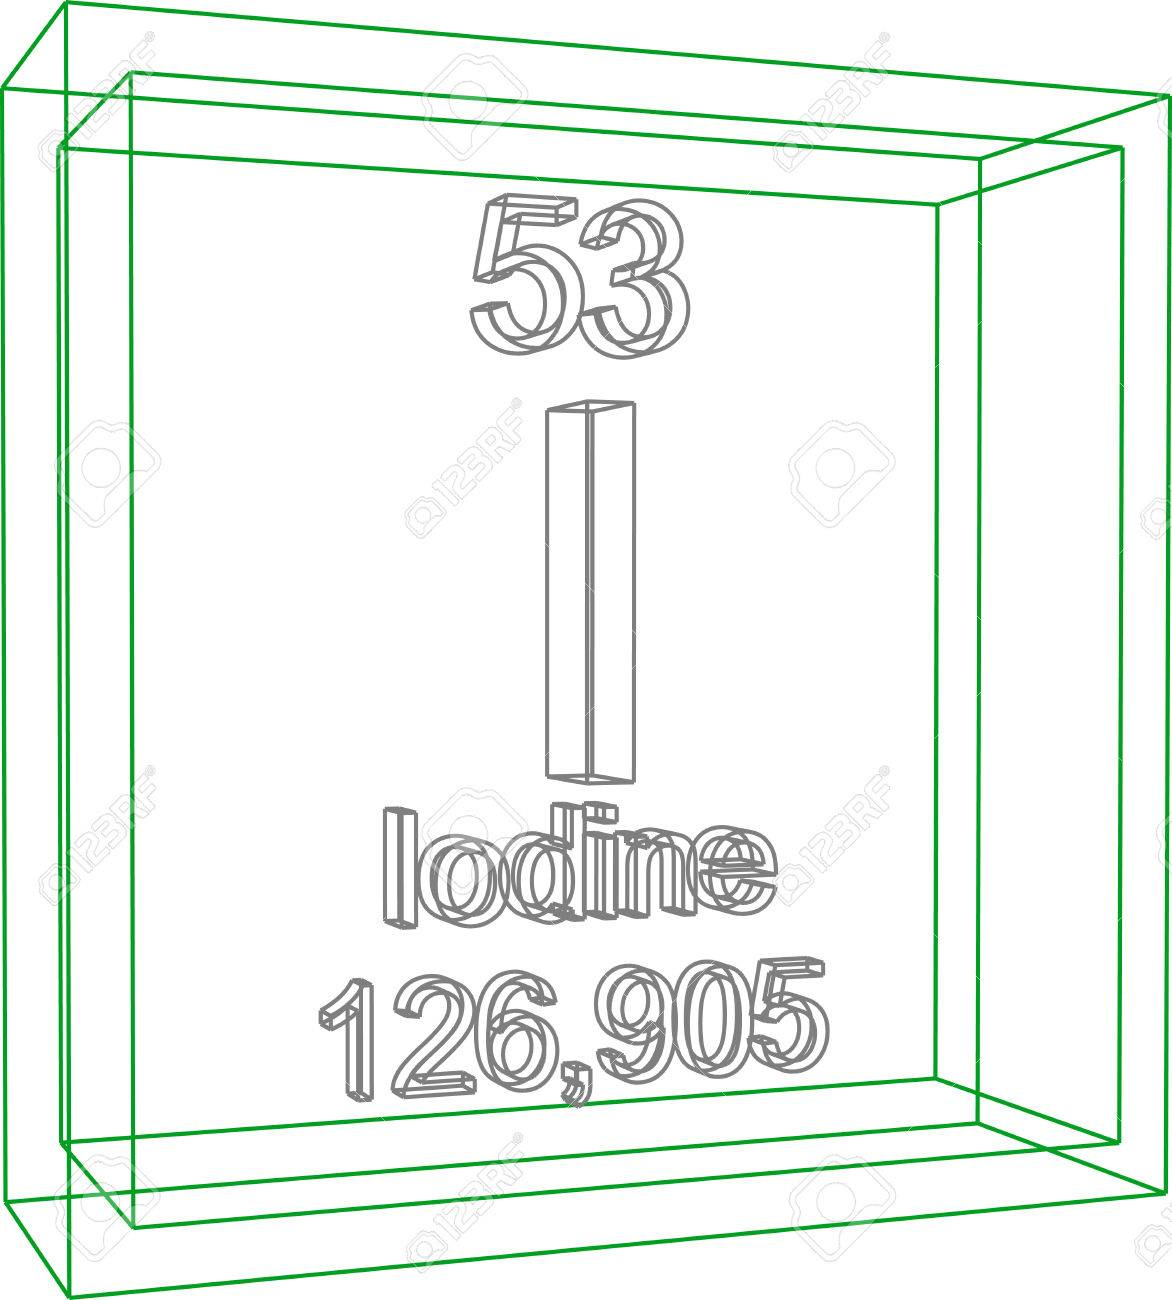 Periodic table iodine image collections periodic table images periodic table of elements iodine royalty free cliparts vectors periodic table of elements iodine stock vector gamestrikefo Choice Image